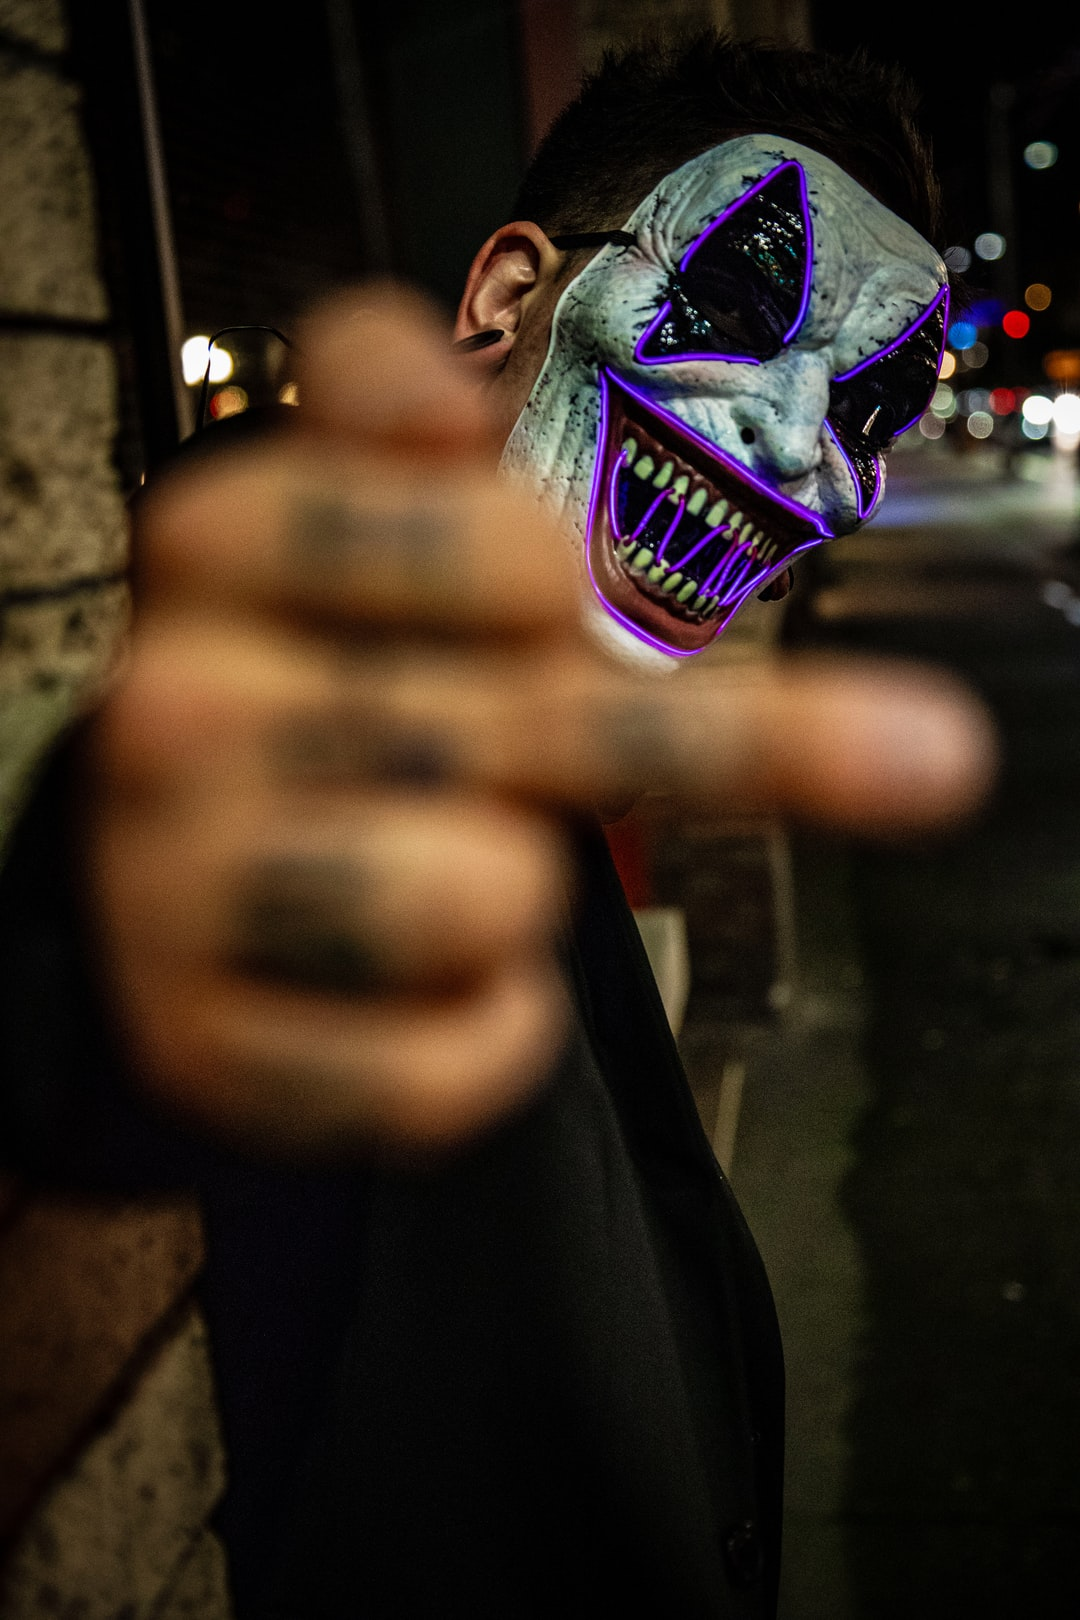 500+ Neon Mask Pictures | Download Free Images on Unsplash